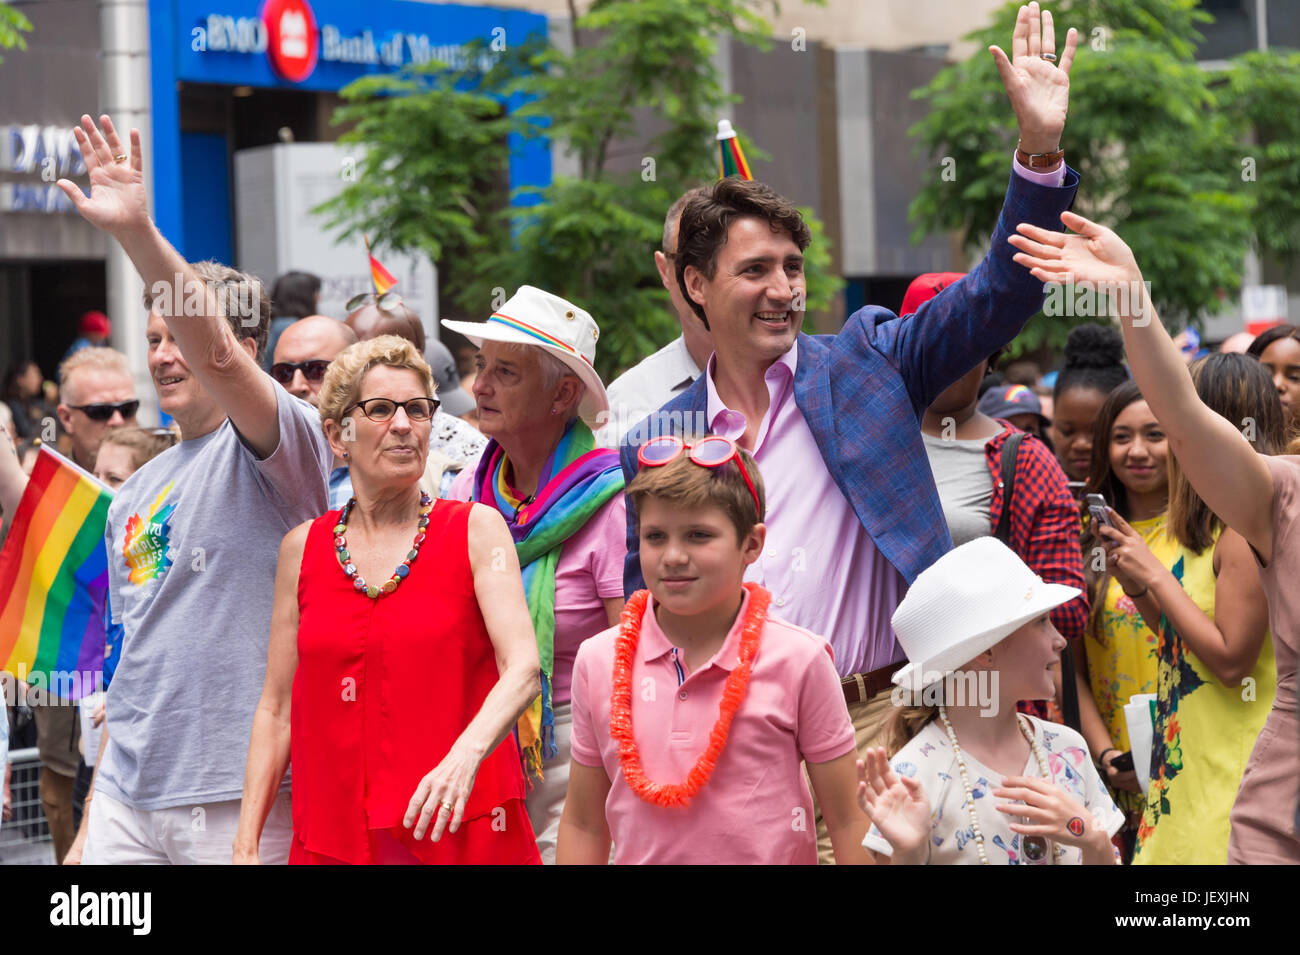 Toronto, Canada. 25 June 2017. Canadian Prime Minister Justin Trudeau, Ontario PM Kathleen Wynne and Trudeau's - Stock Image